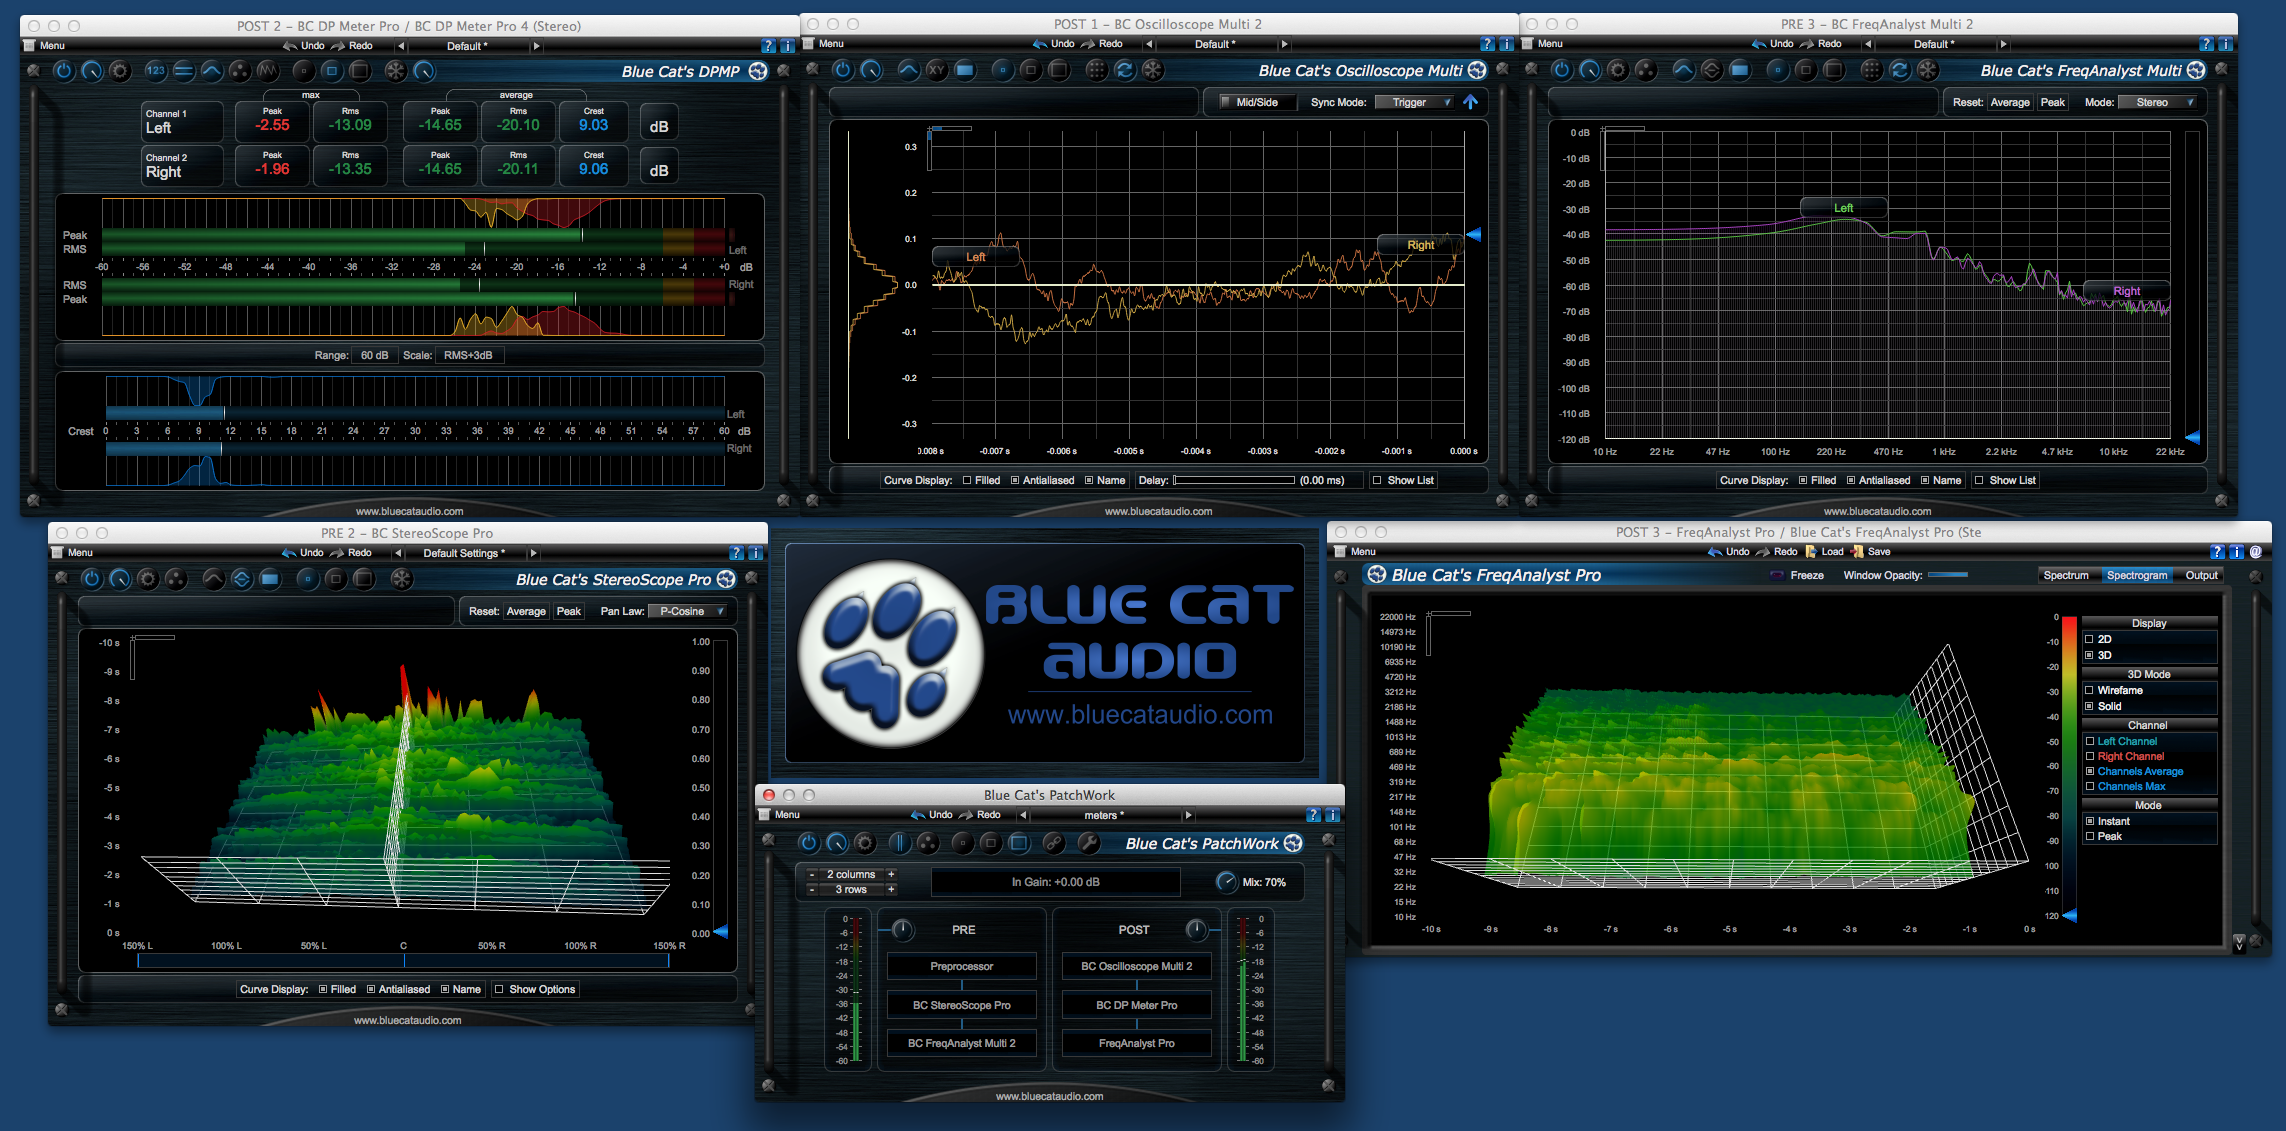 Blue Cat's PatchWork Standalone: What Can It Do for You